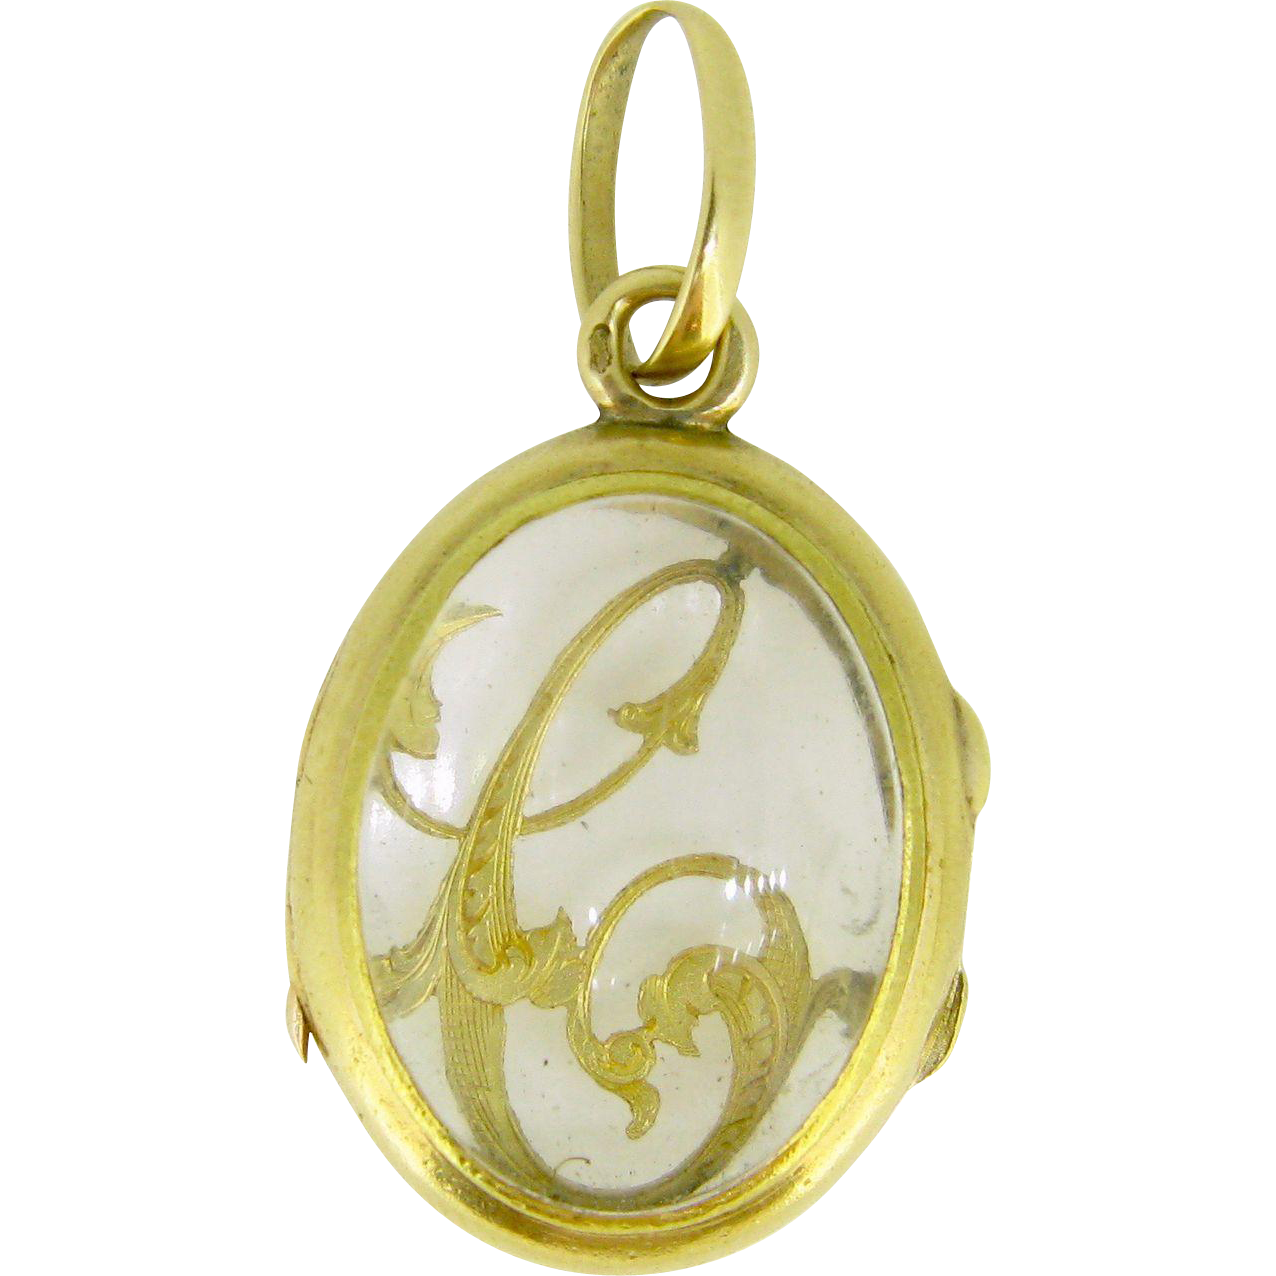 Antique French Glass Locket / Pendant with a Monogram , 18kt gold, c.1900